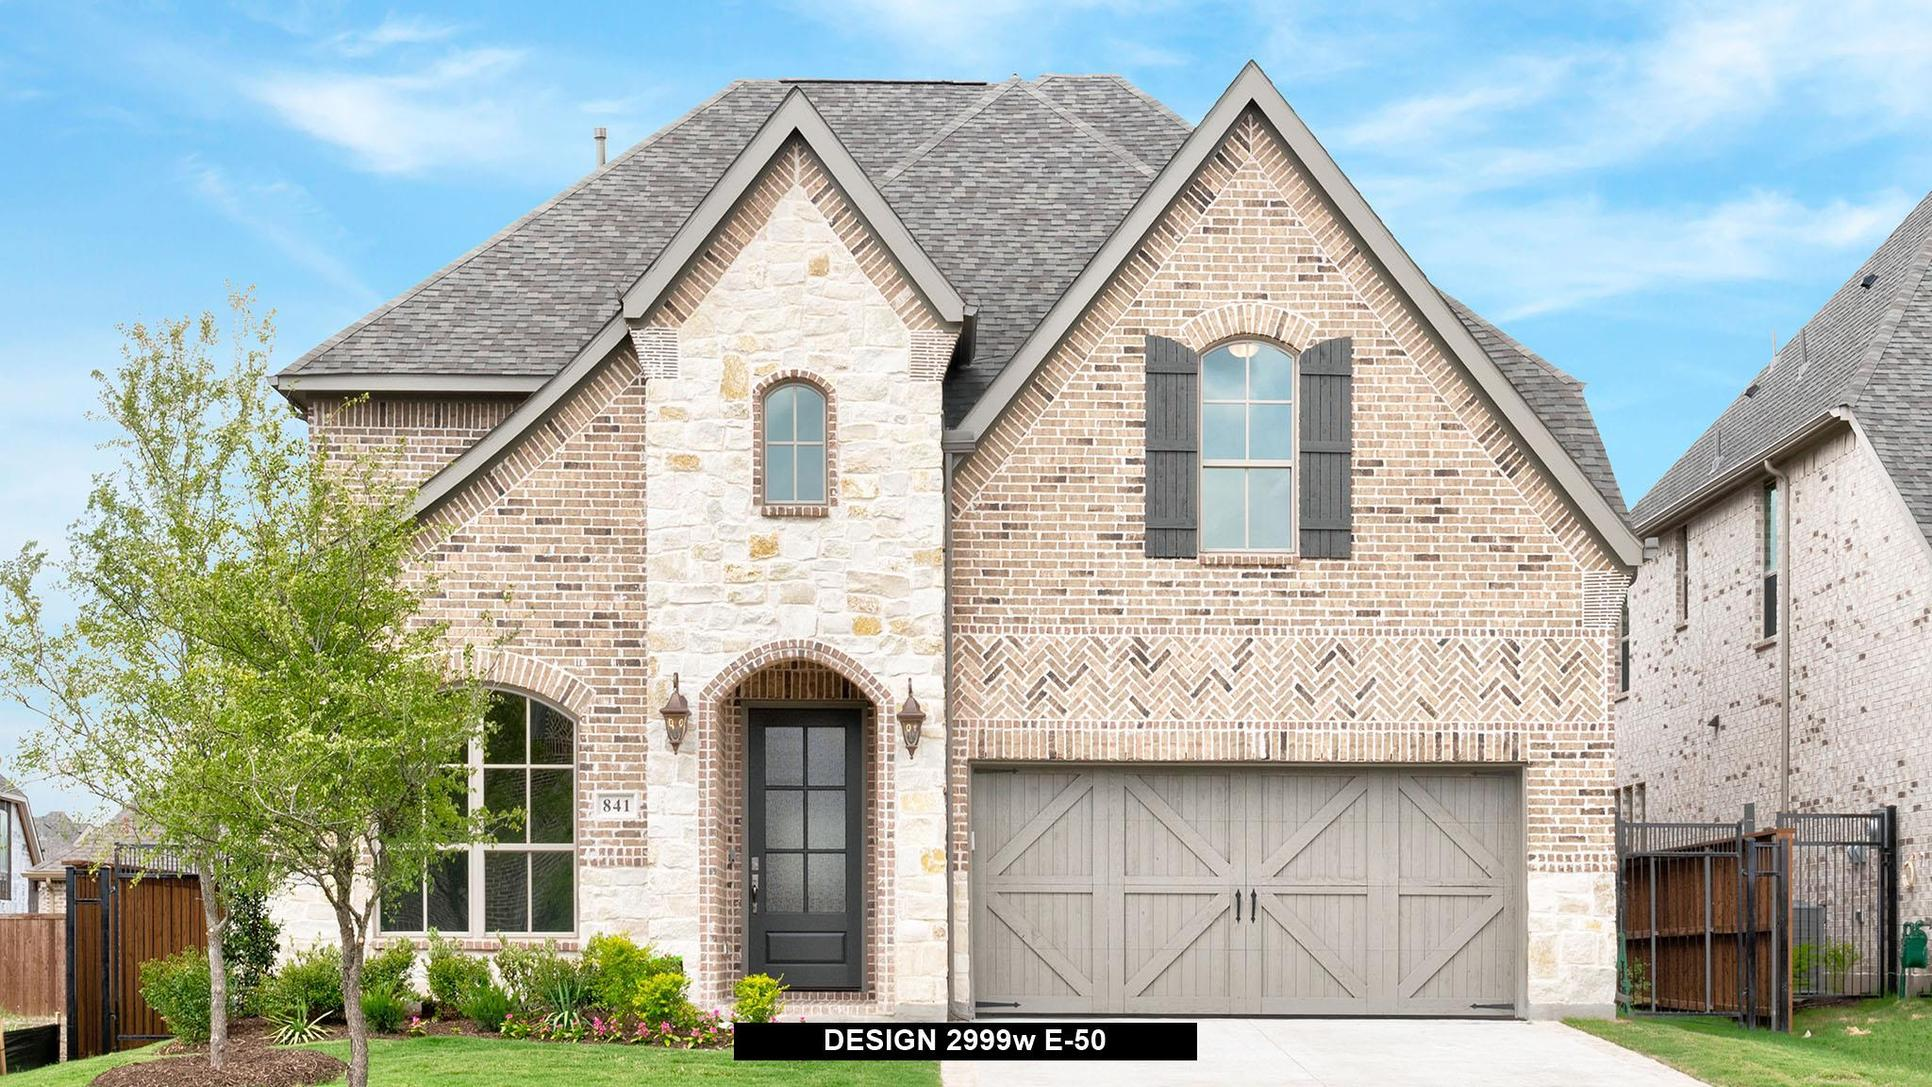 Plan 2999W:Representative photo.  Features and specifications may vary by community.